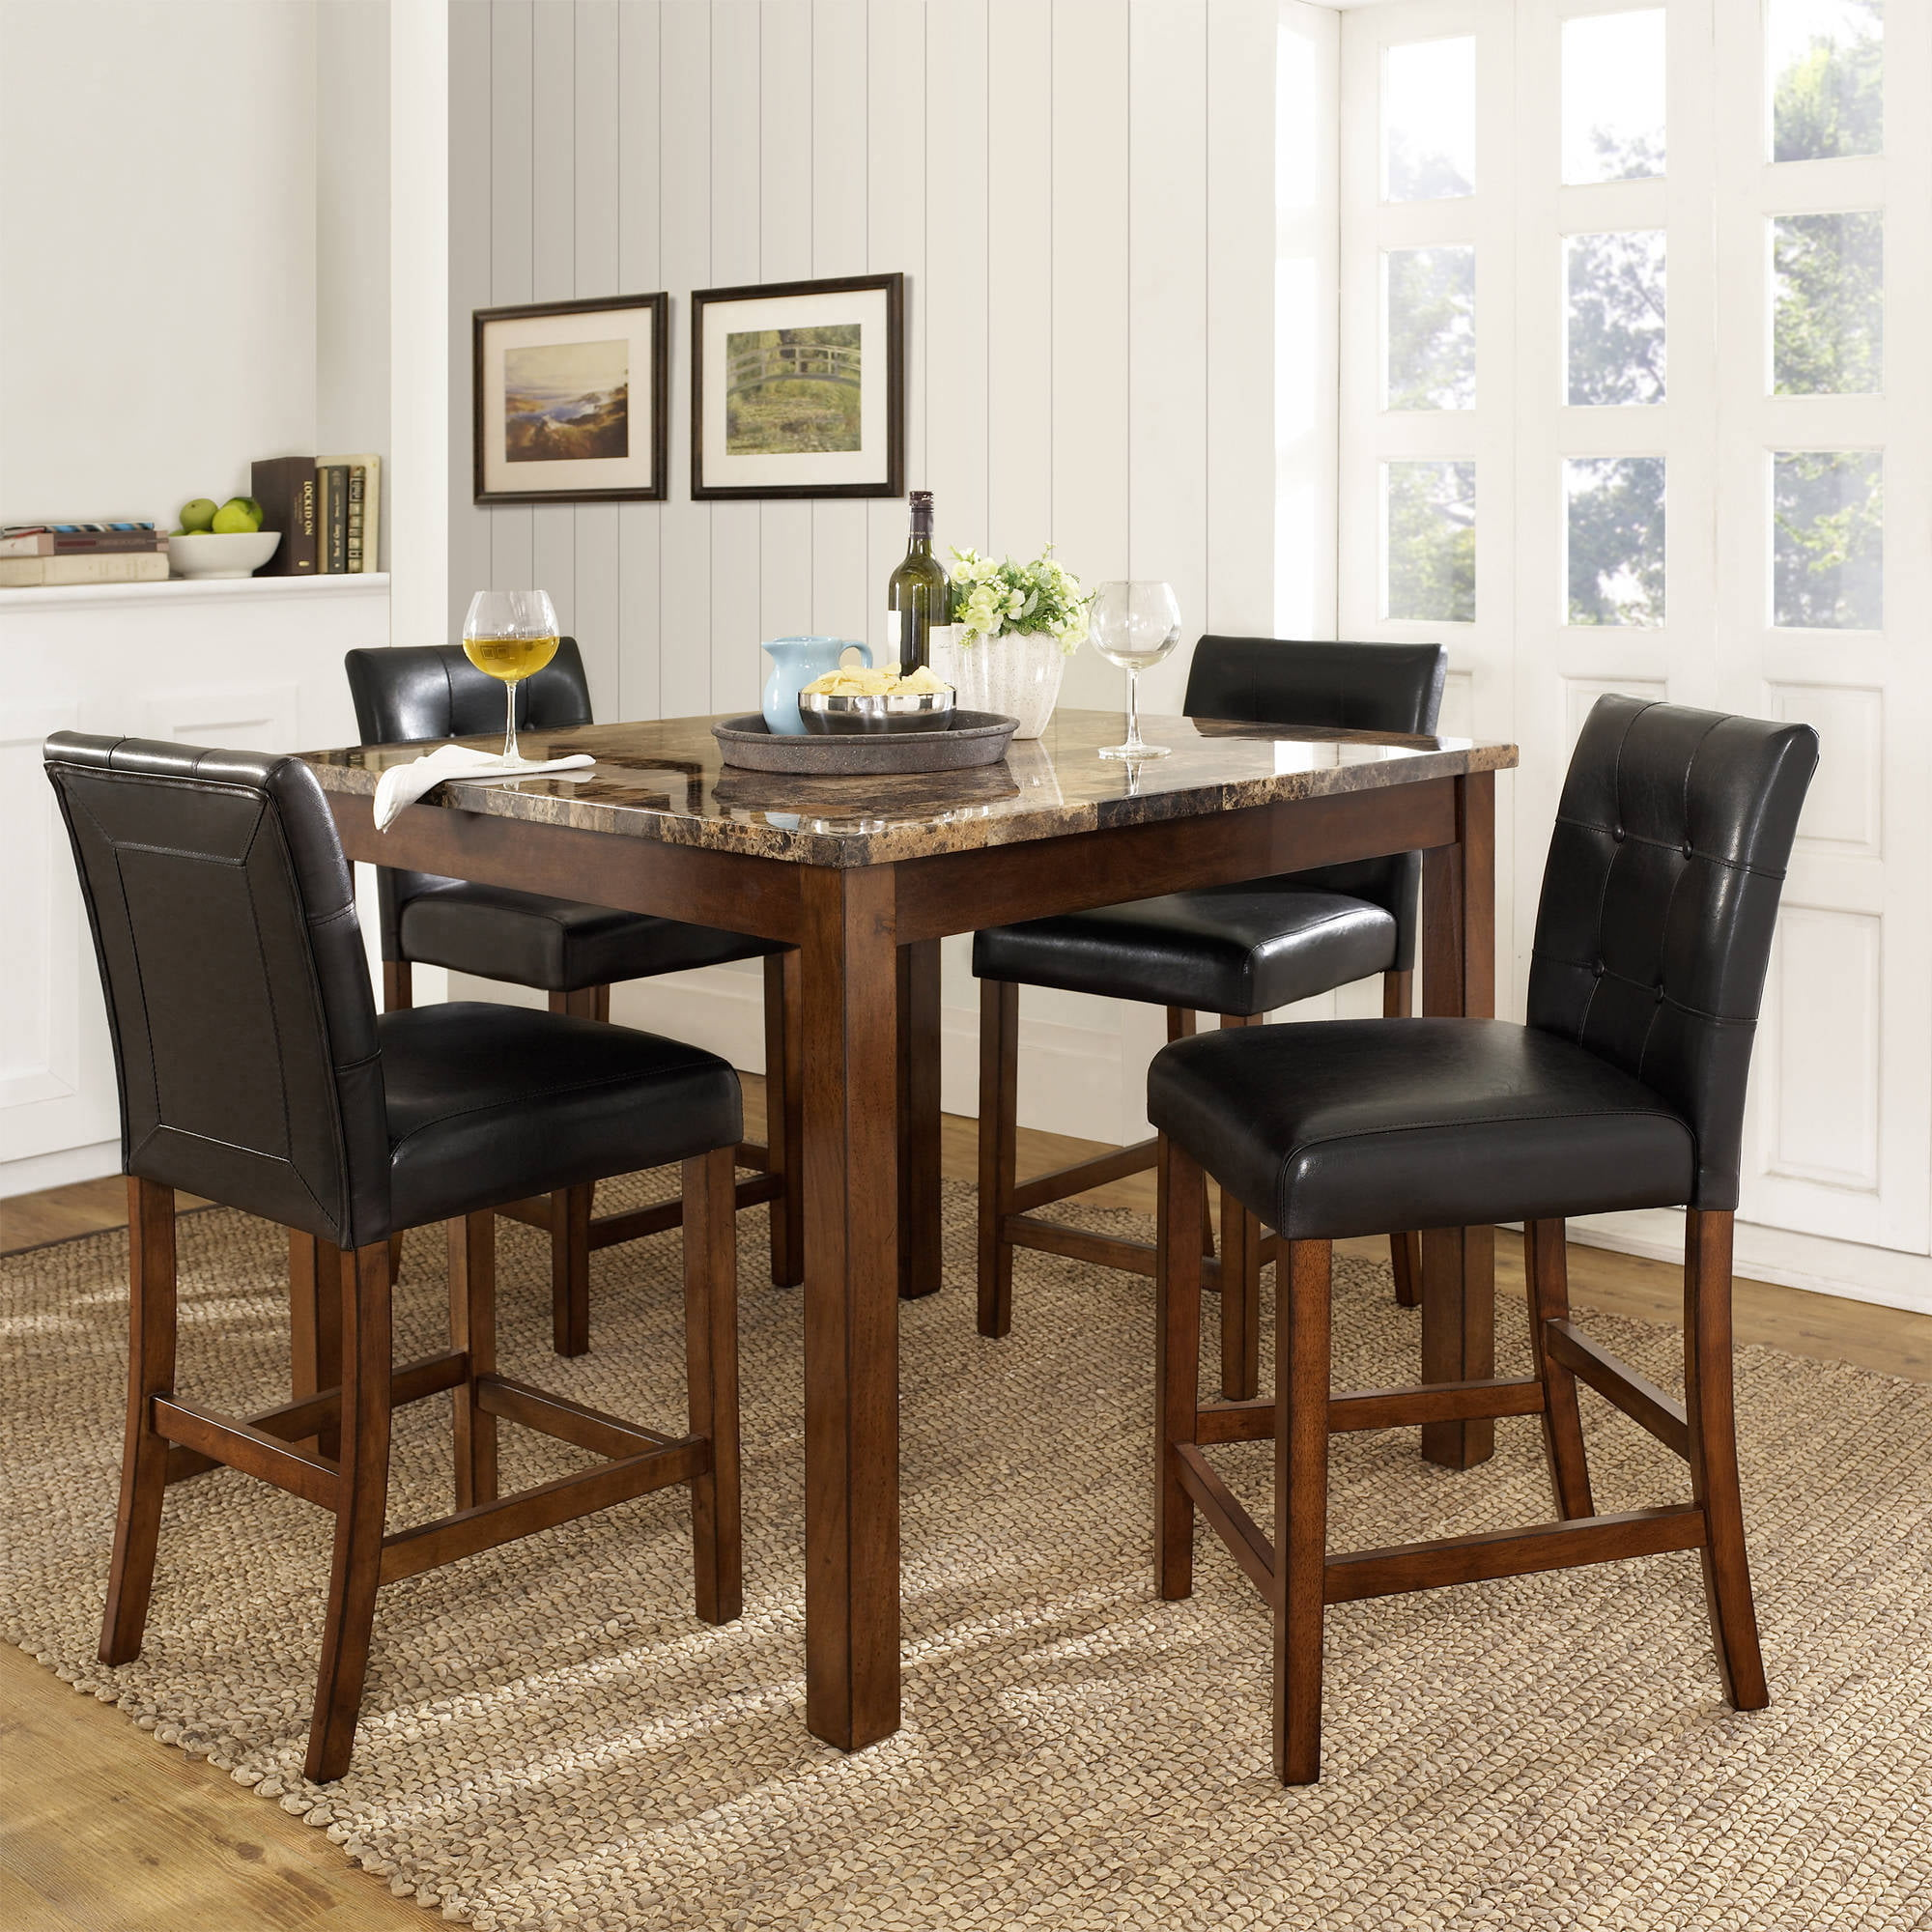 Dorel Living Andover 5 Piece Faux Marble Counter Height Dining Set,  Multiple Colors   Walmart.com